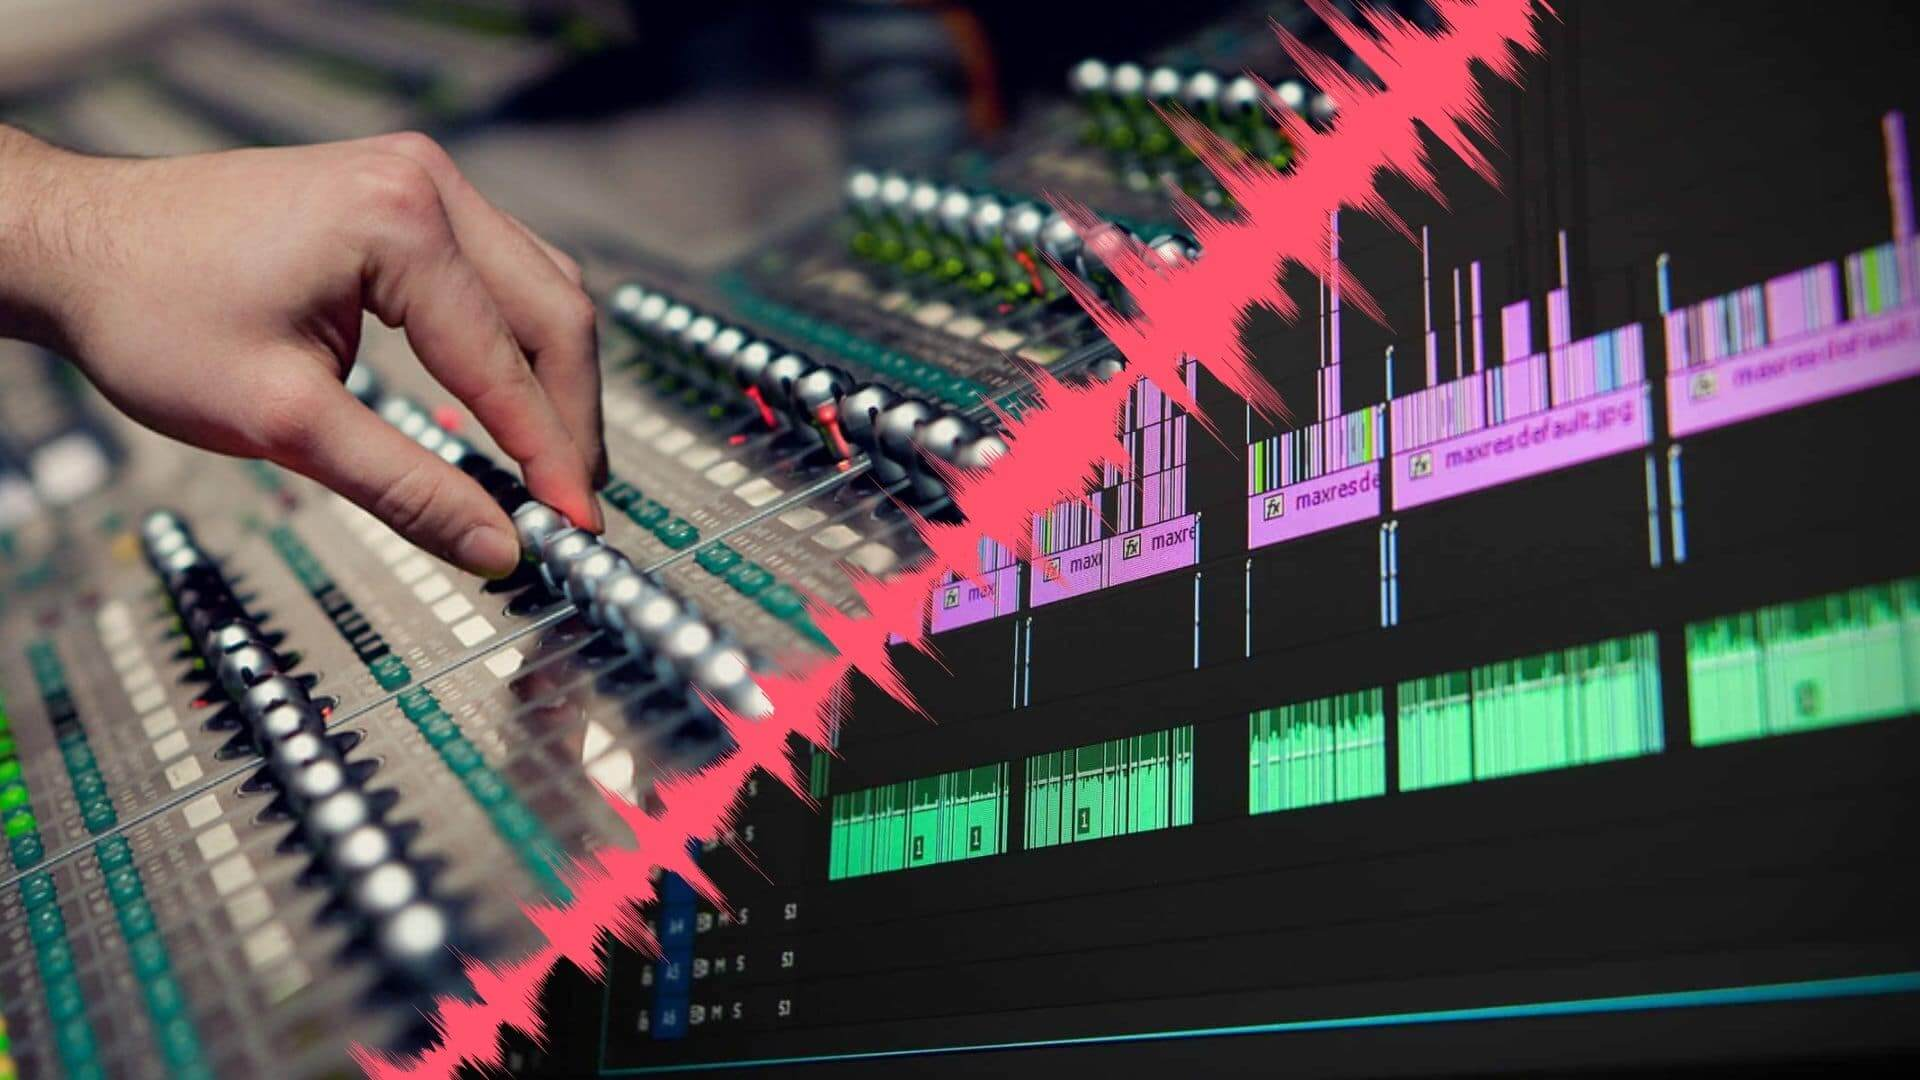 Sound Mixing vs Sound Editing - Featured - StudioBinder